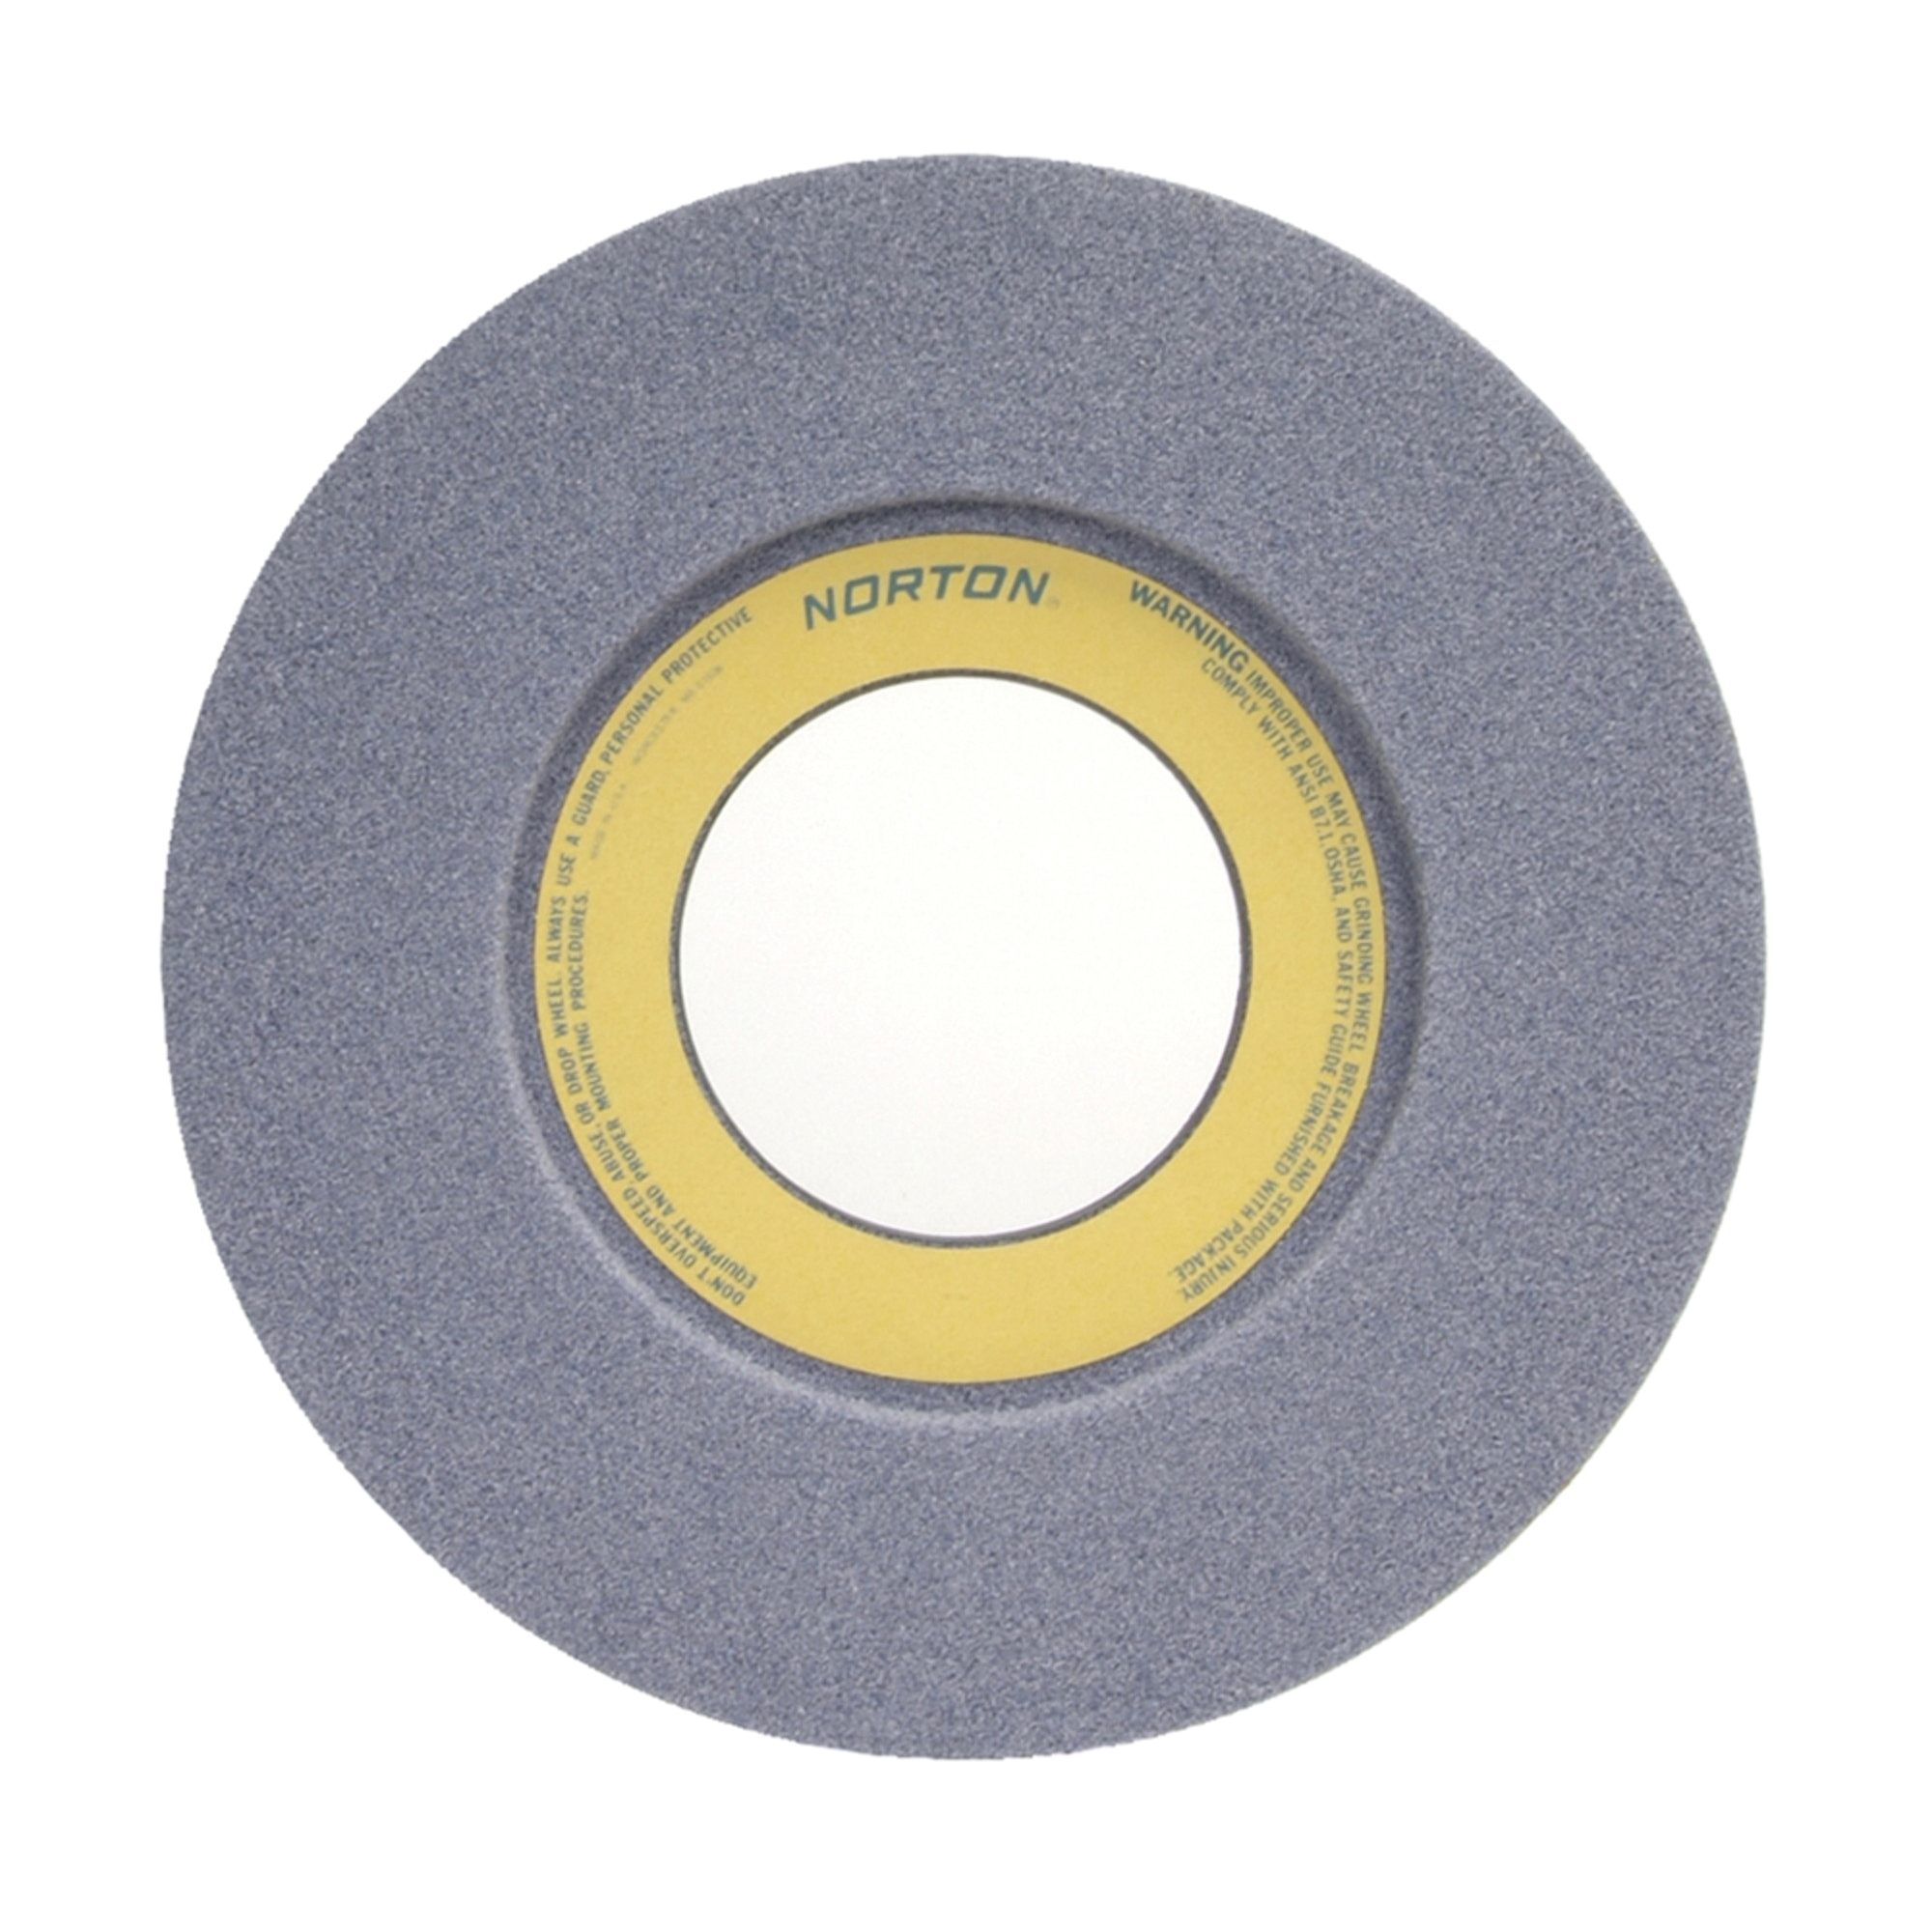 Norton® 66253364300 32A 1-Side Recessed Toolroom Wheel, 14 in Dia x 1-1/2 in THK, 5 in Center Hole, 46 Grit, Aluminum Oxide Abrasive